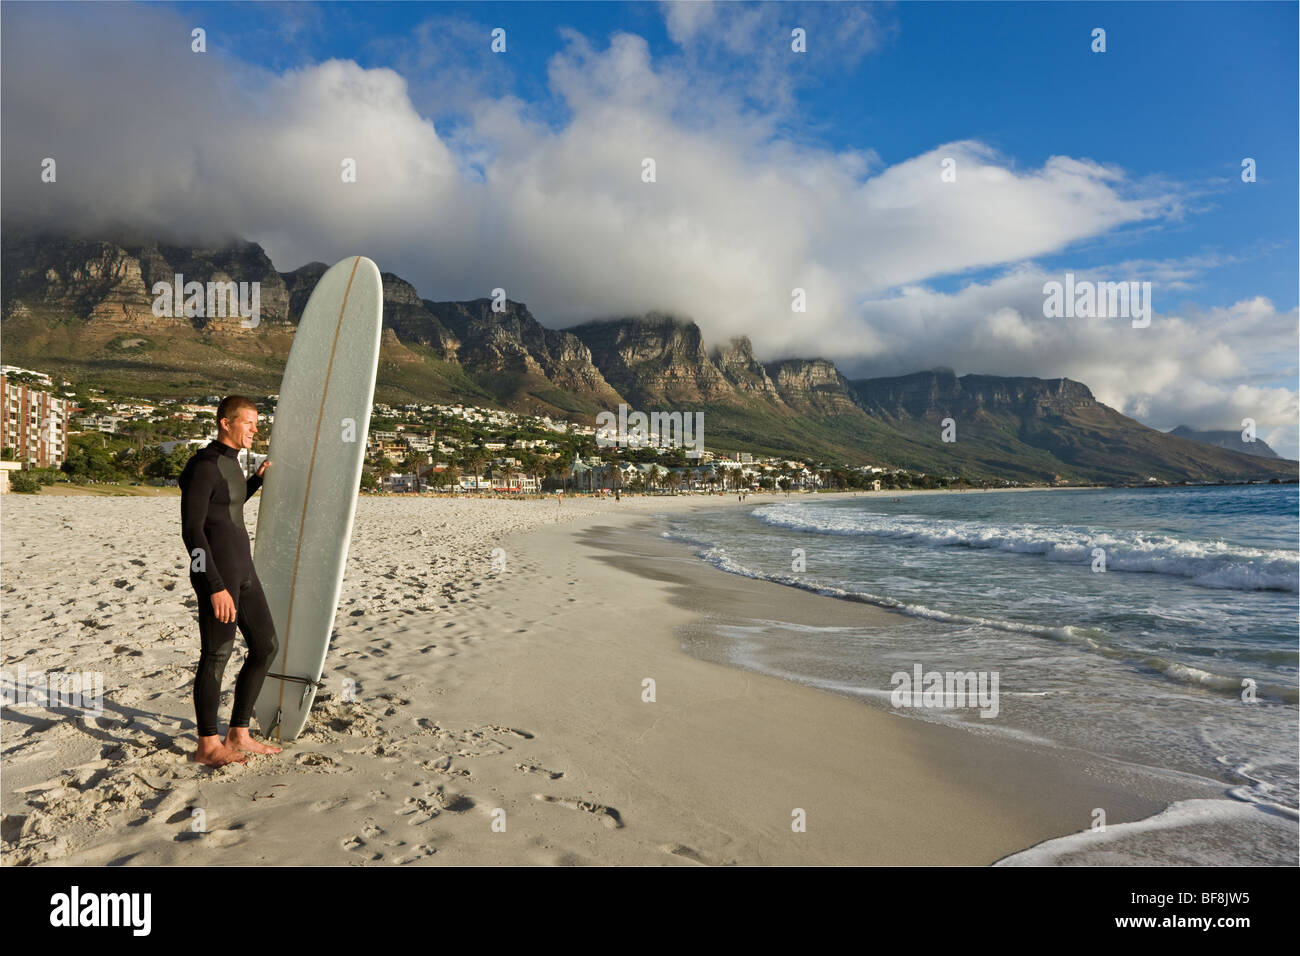 Surfer on camps bay beach with twelve apostles of Table Mountain in background. Cape Town South Africa - Stock Image